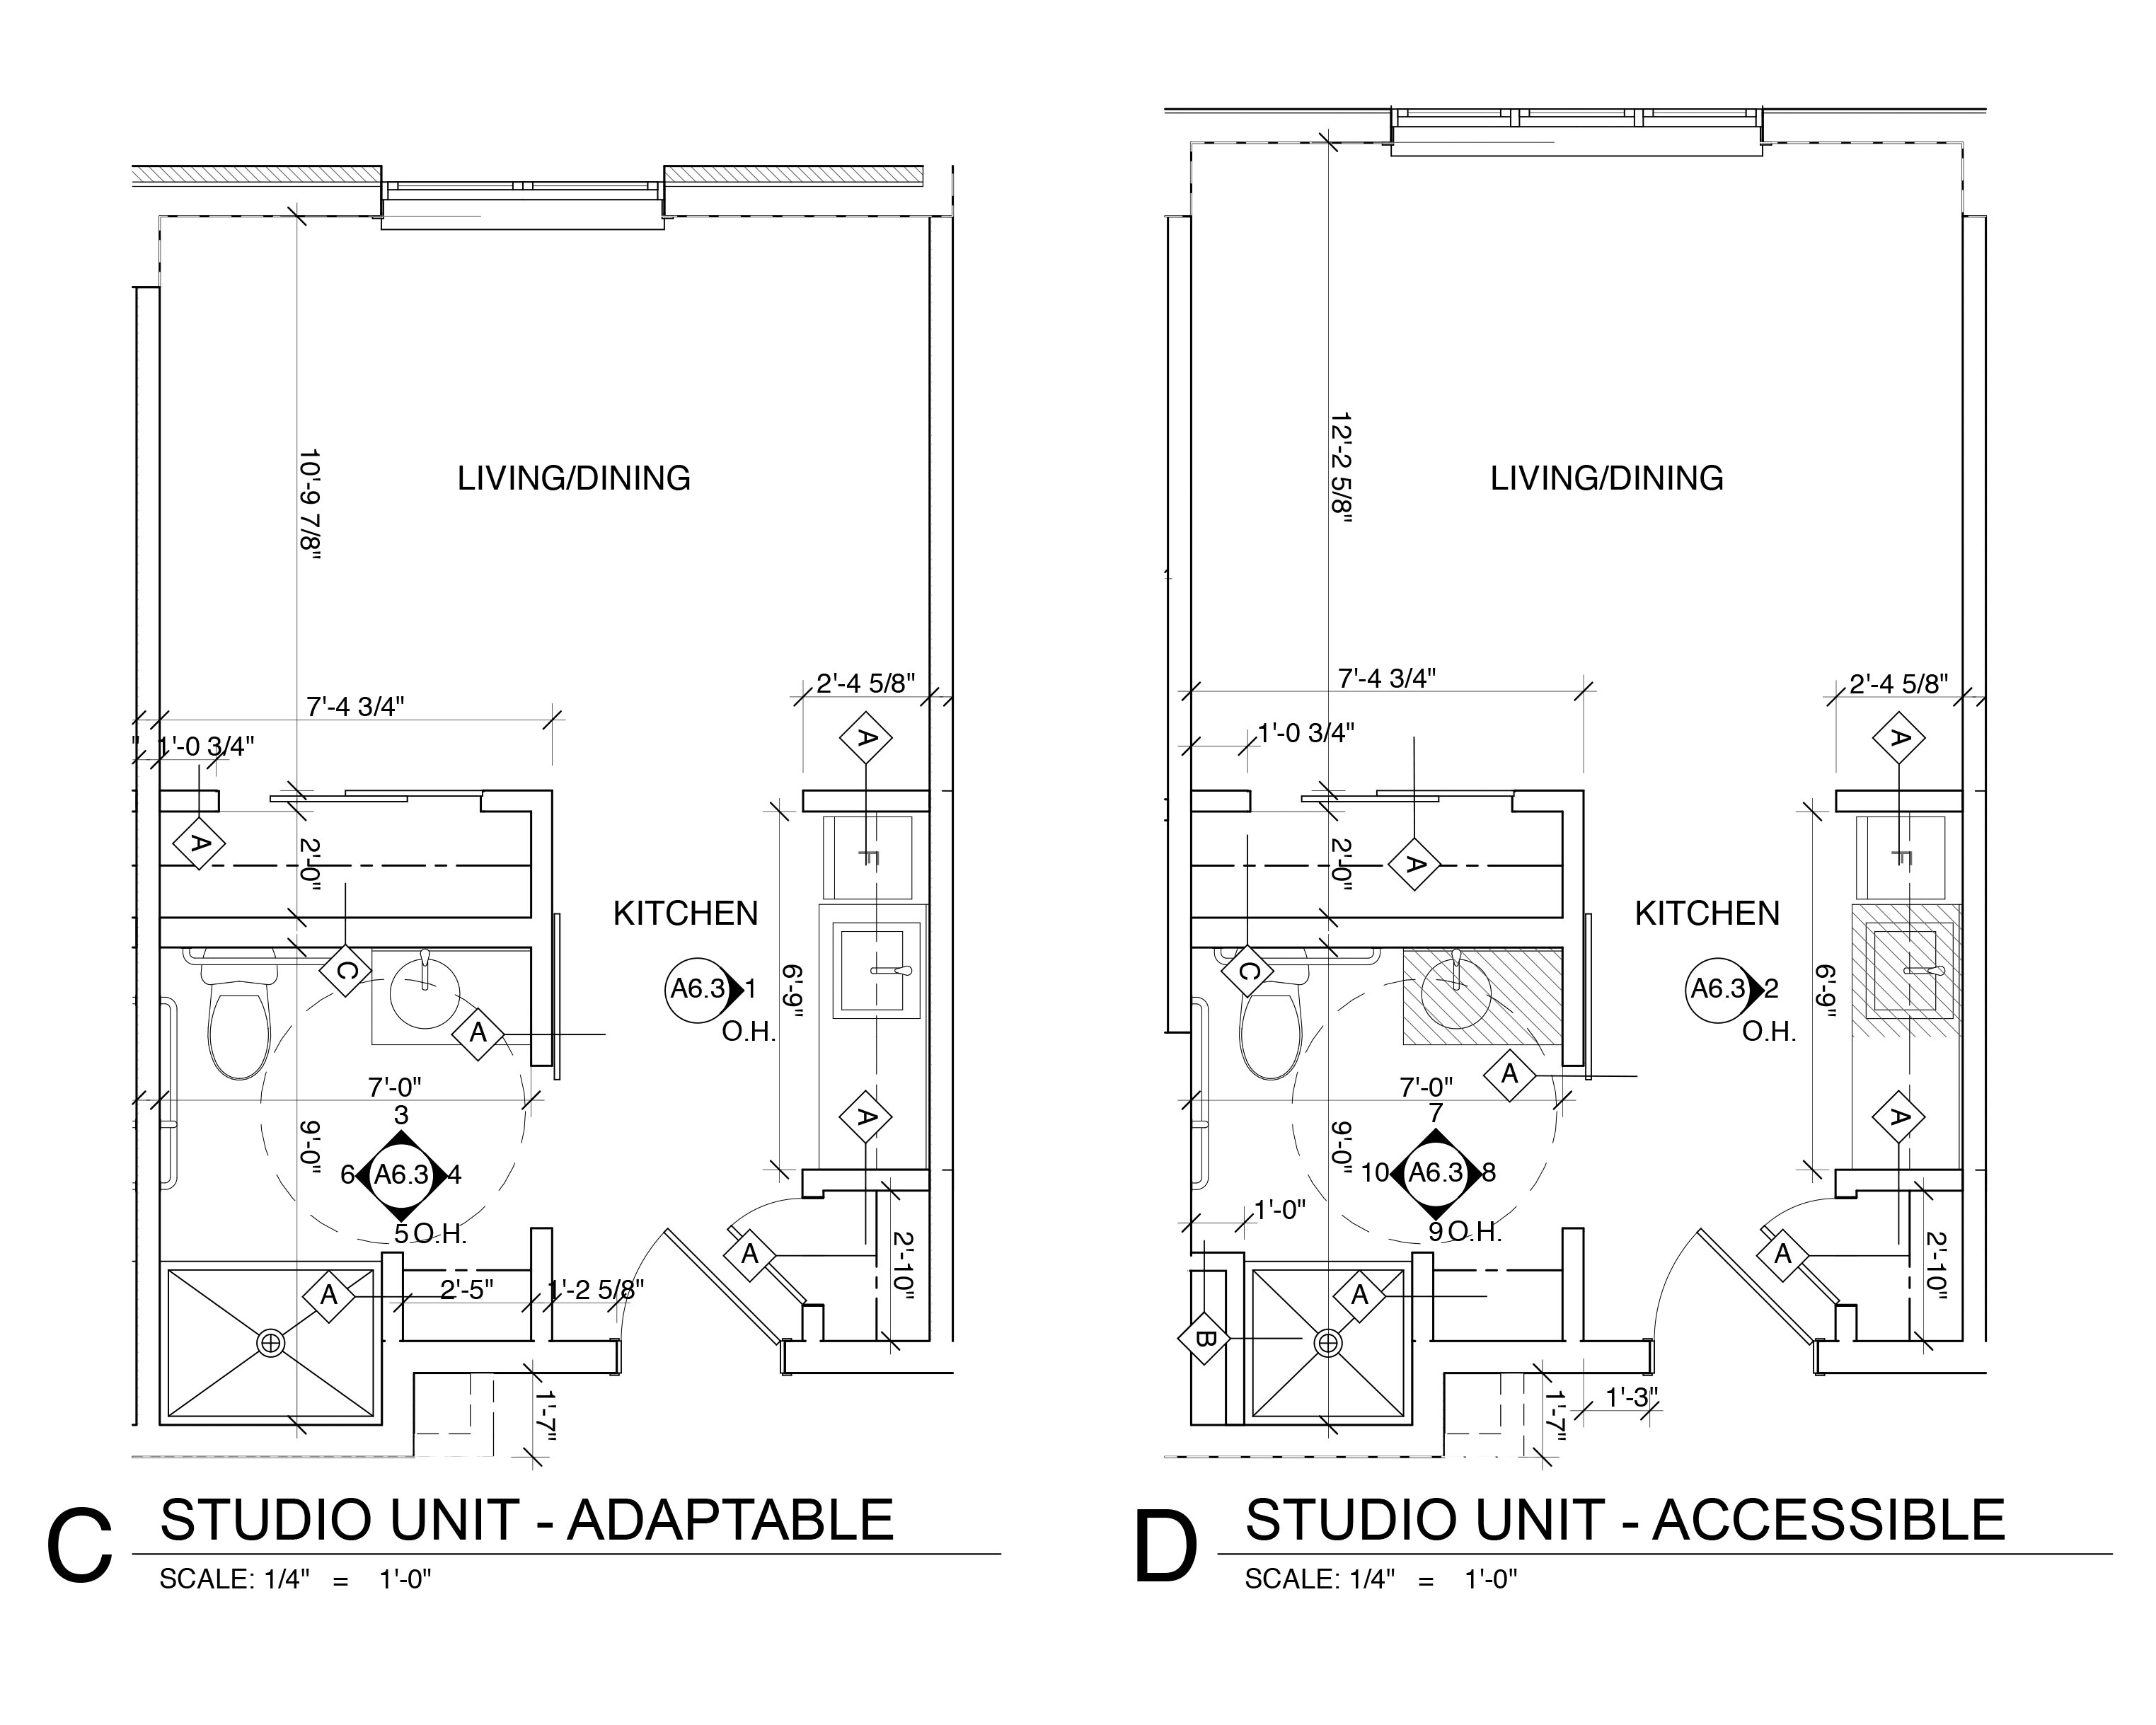 Studio Units - Adaptable & Accessible